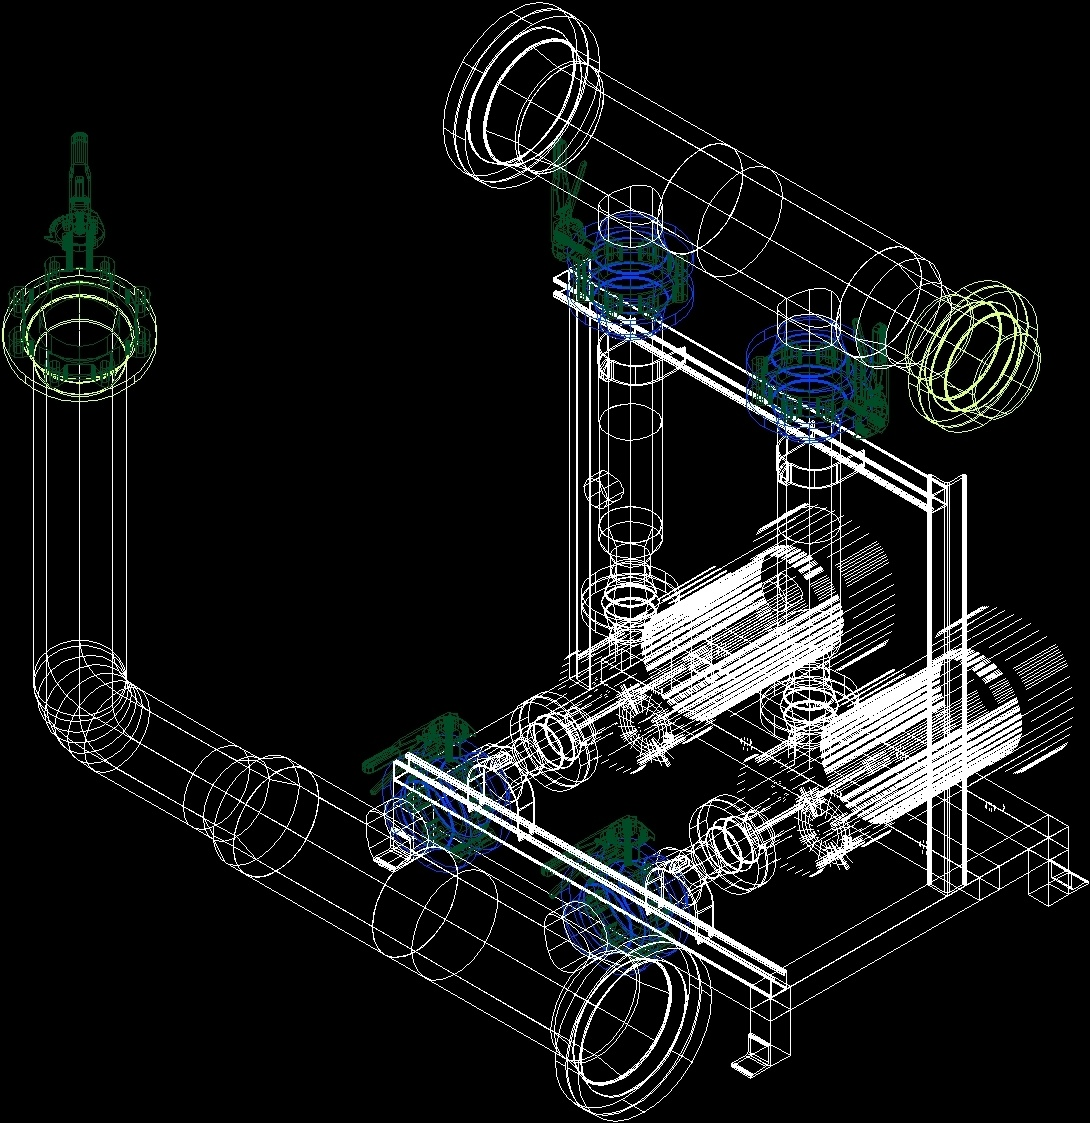 Water pumping system 3d dwg model for autocad designscad Cad system